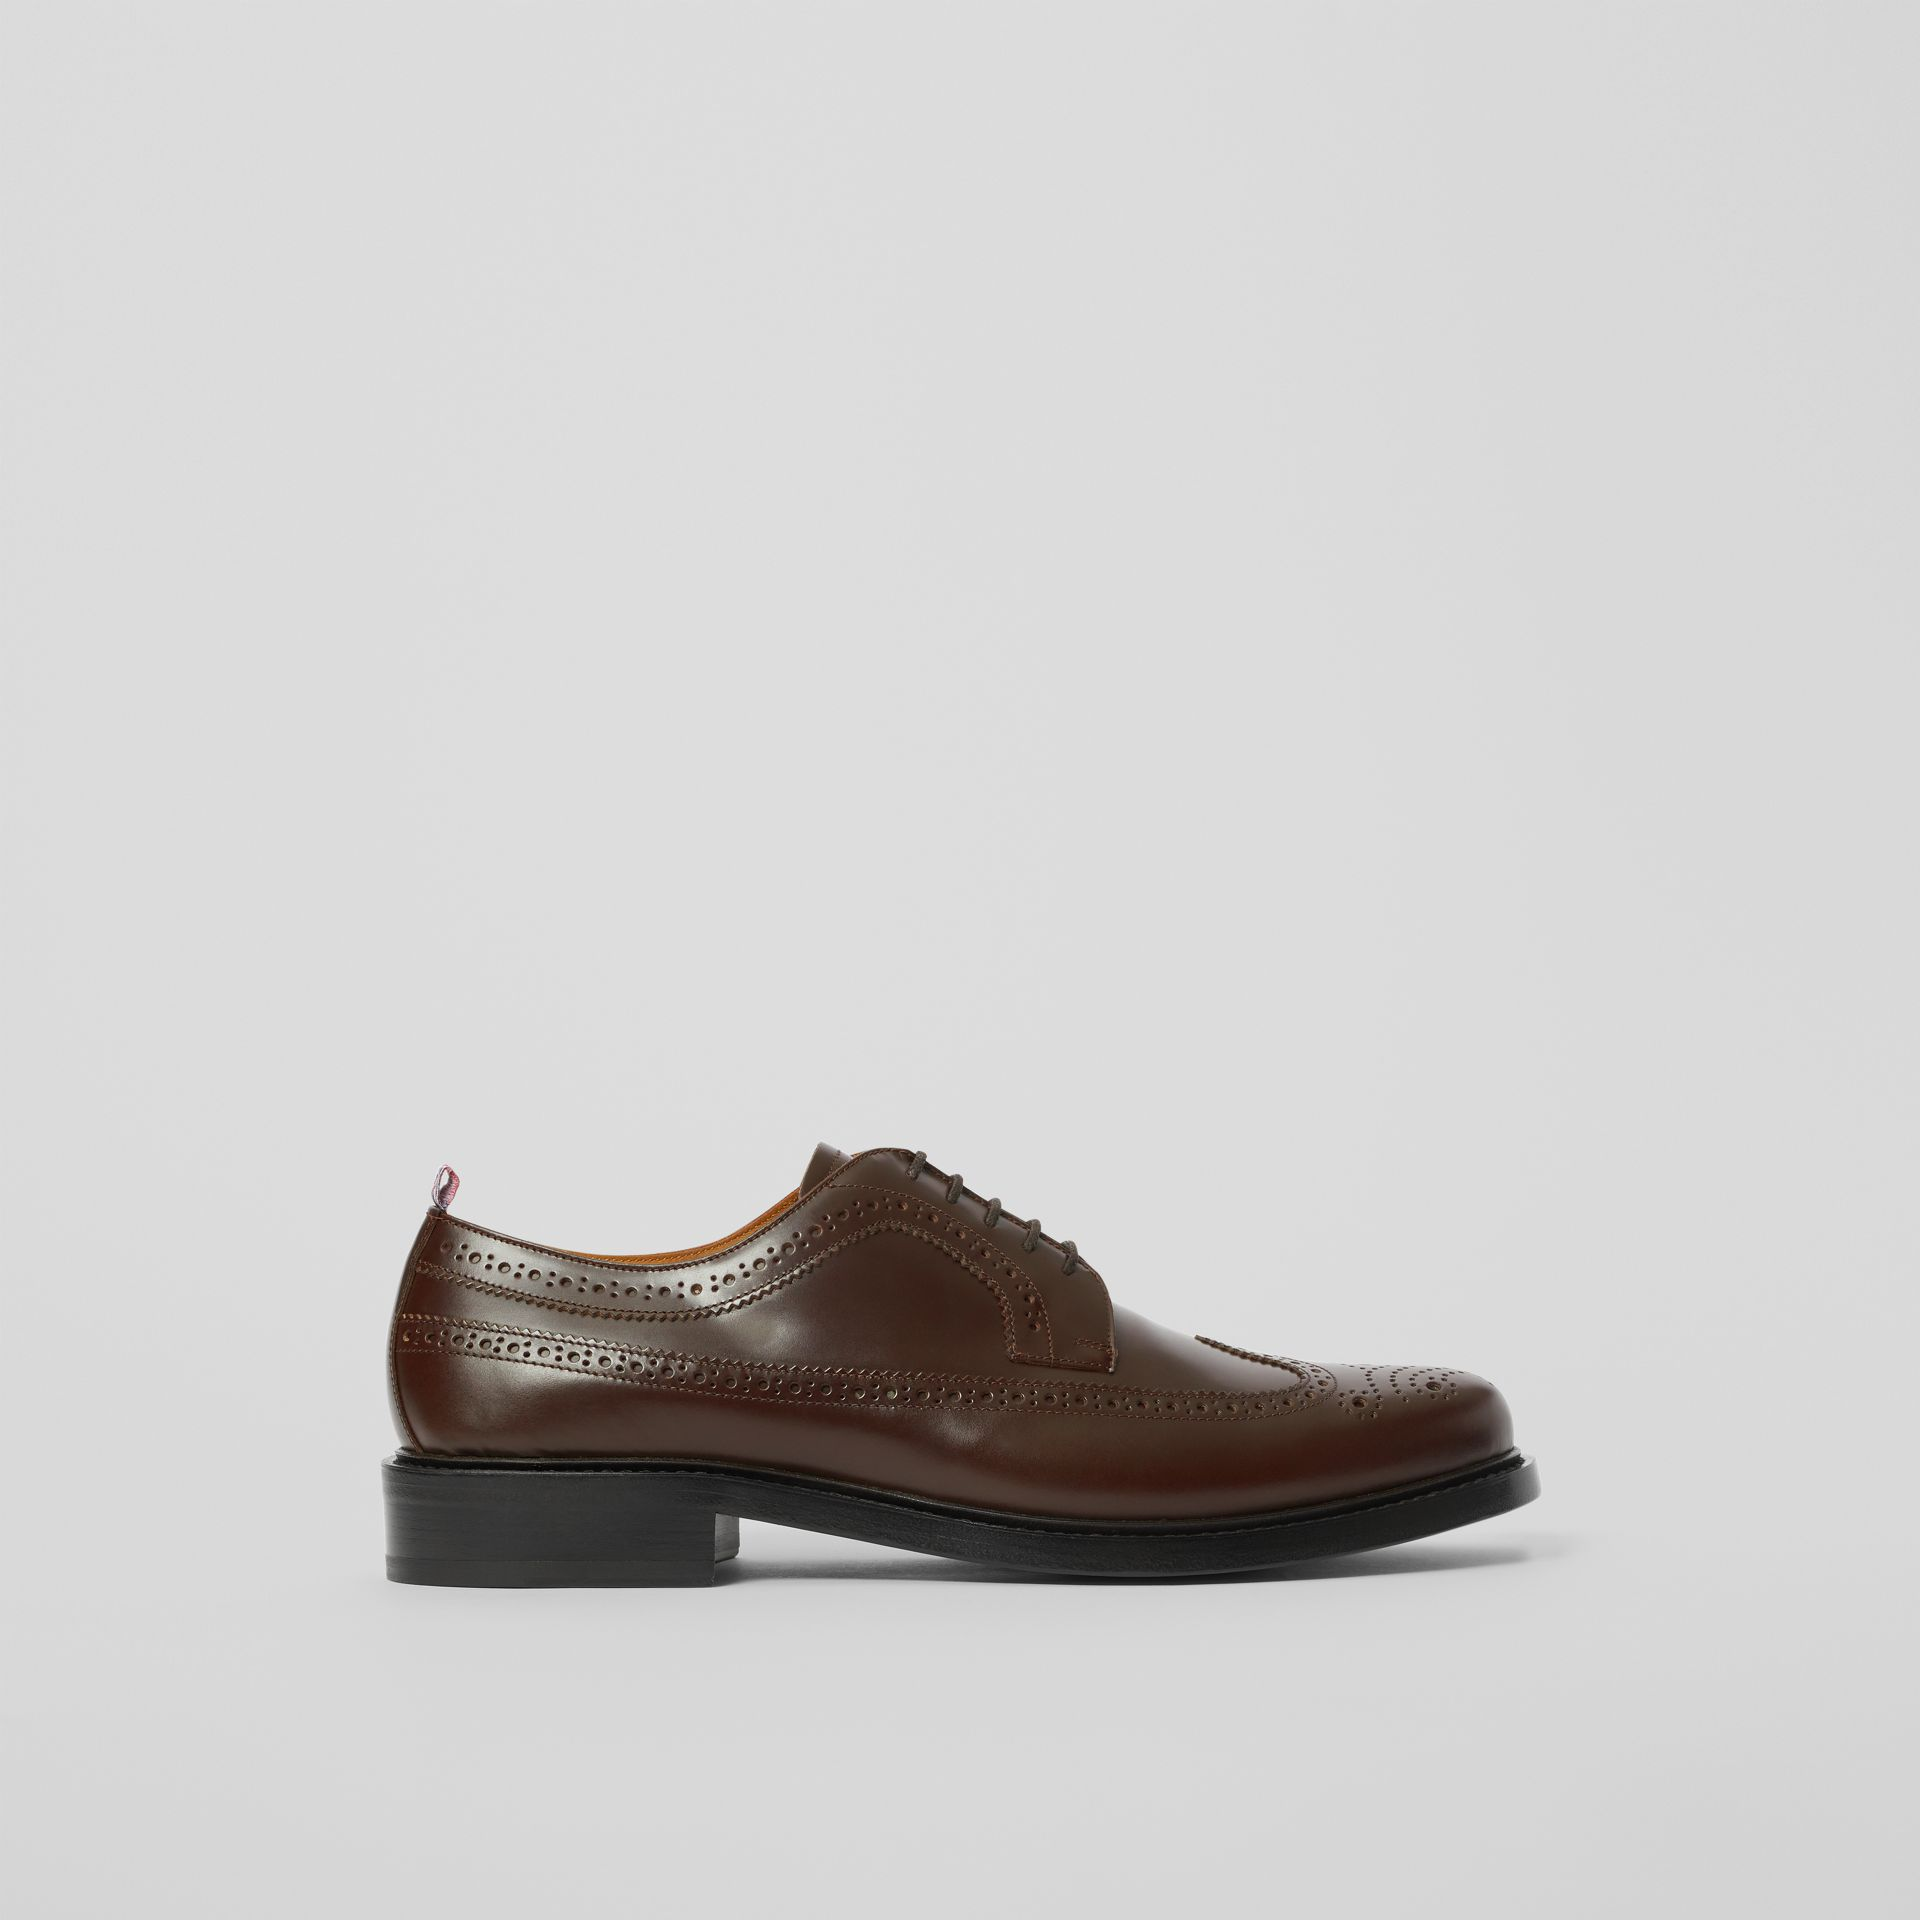 Brogue Detail Leather Derby Shoes in Tan - Men | Burberry - gallery image 4